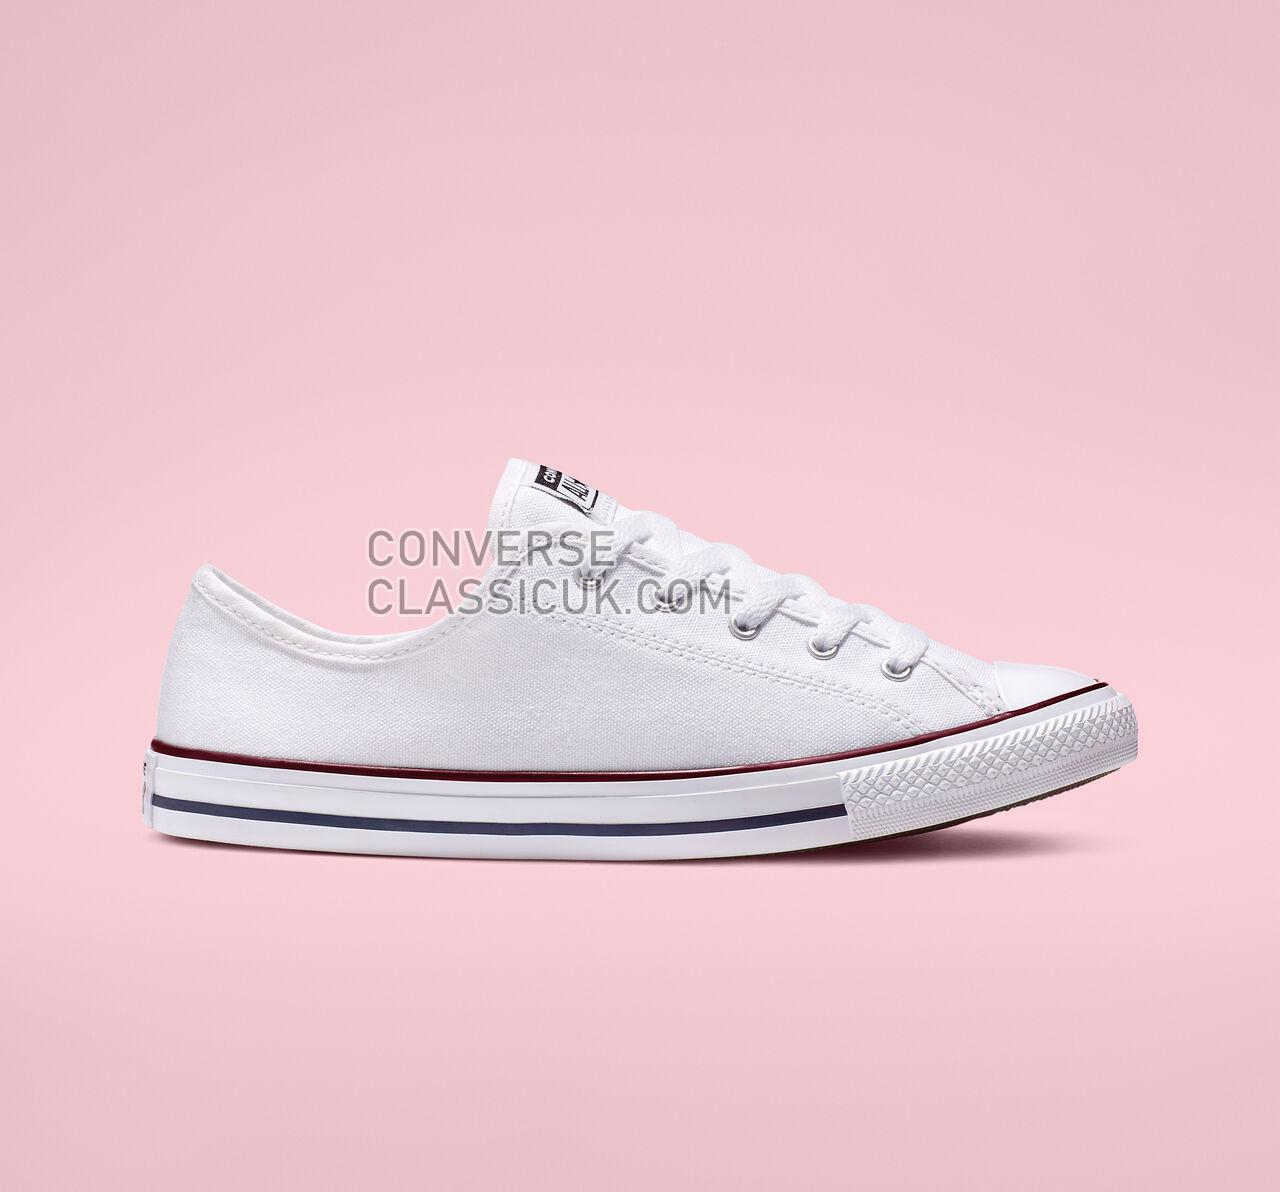 Converse Chuck Taylor All Star Dainty Low Top Womens 564981F White/Red/Blue Shoes